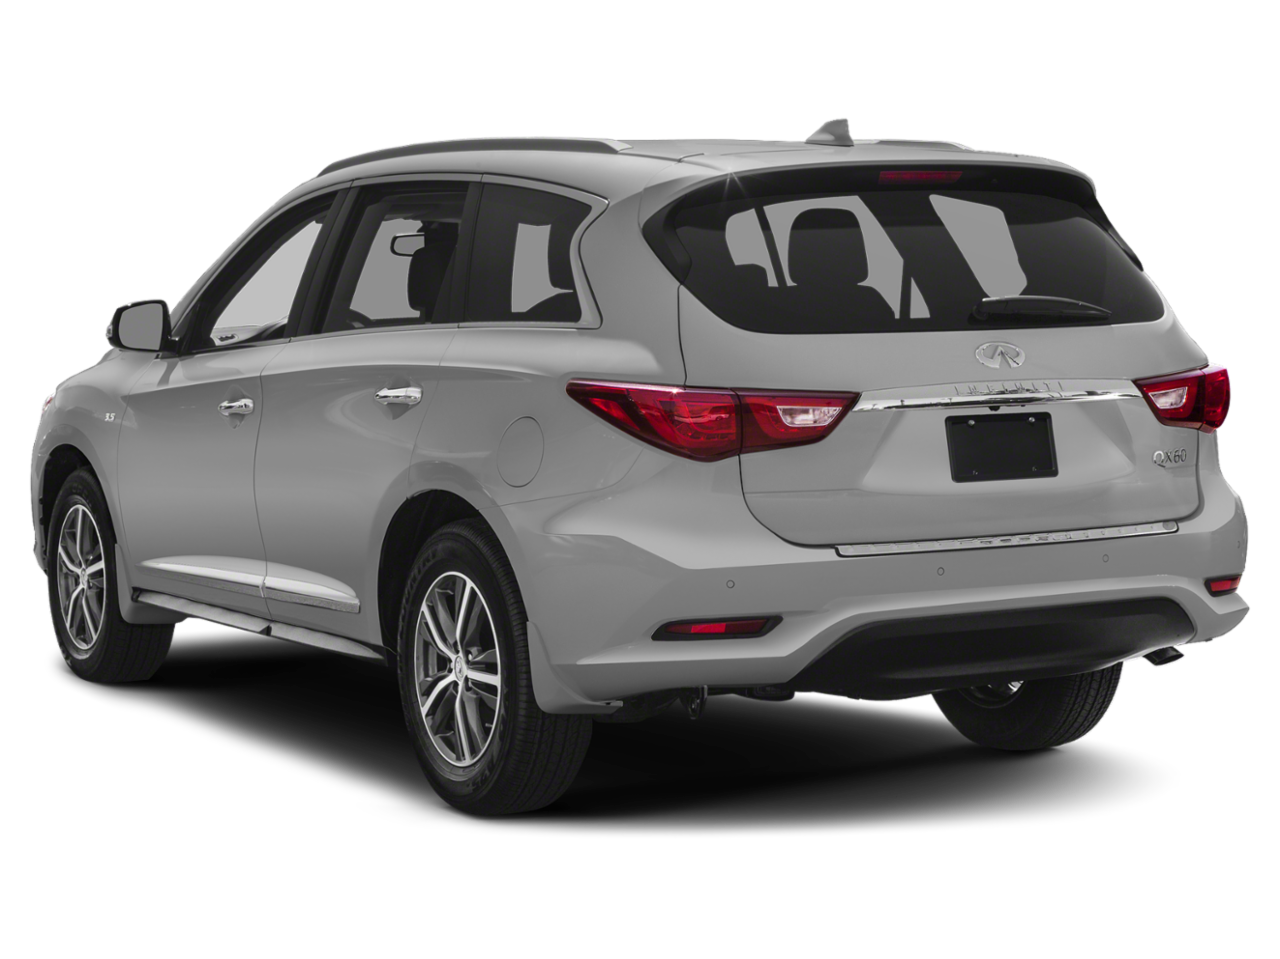 "2019 INFINITI<br/><span class=""vdp-trim"">QX60 LUXE FWD Sport Utility</span>"